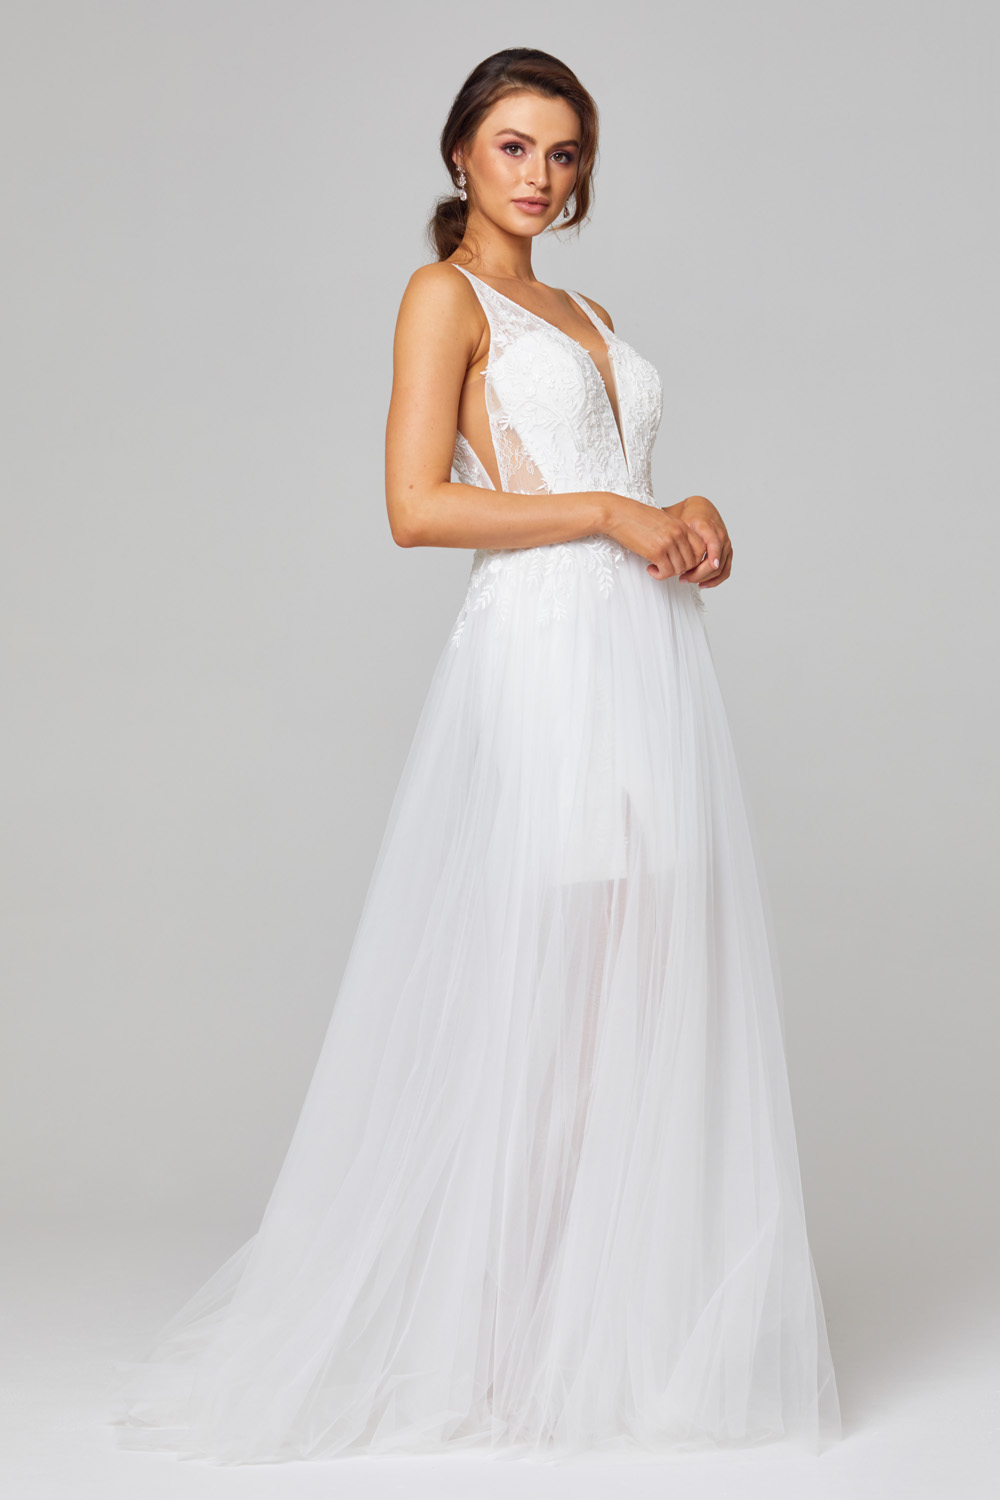 TC319 Arabella wedding dress